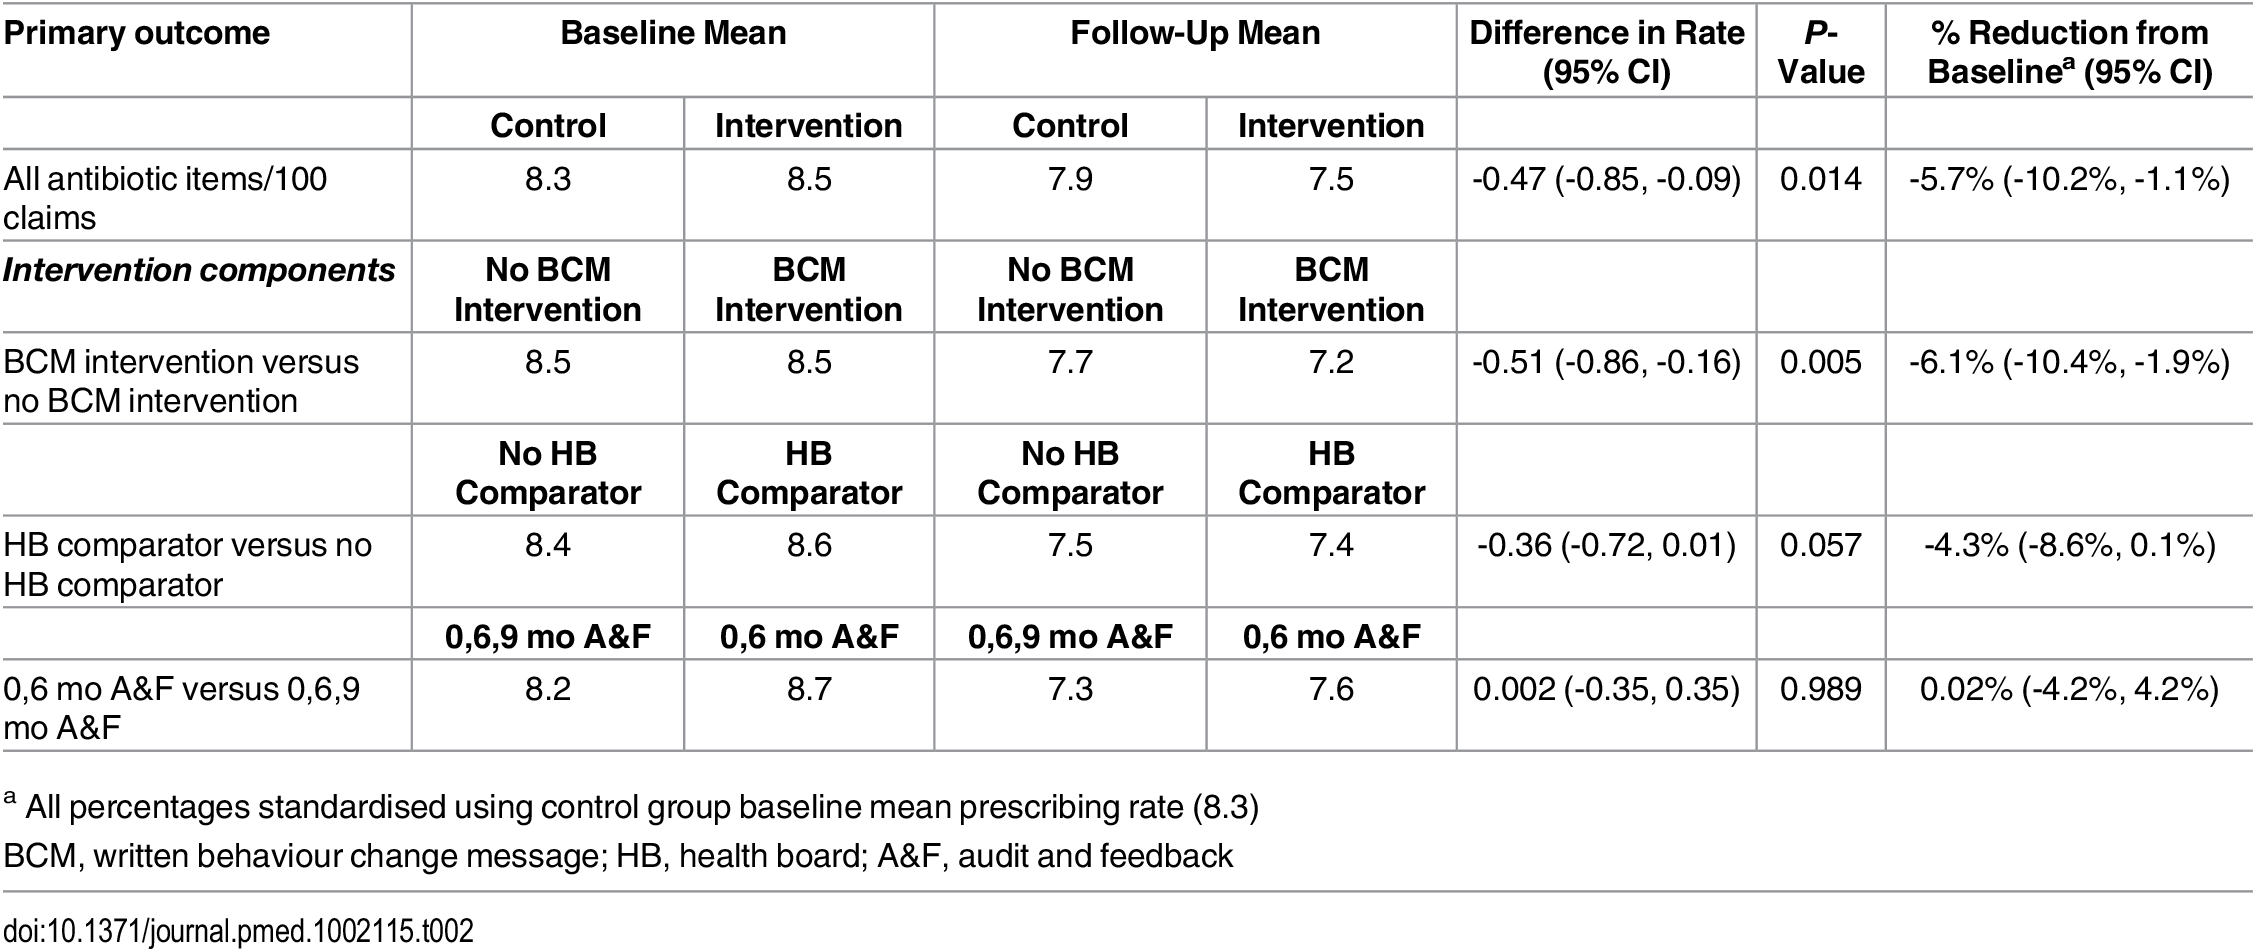 Summary results of all item antibiotic prescribing rates (primary outcome).